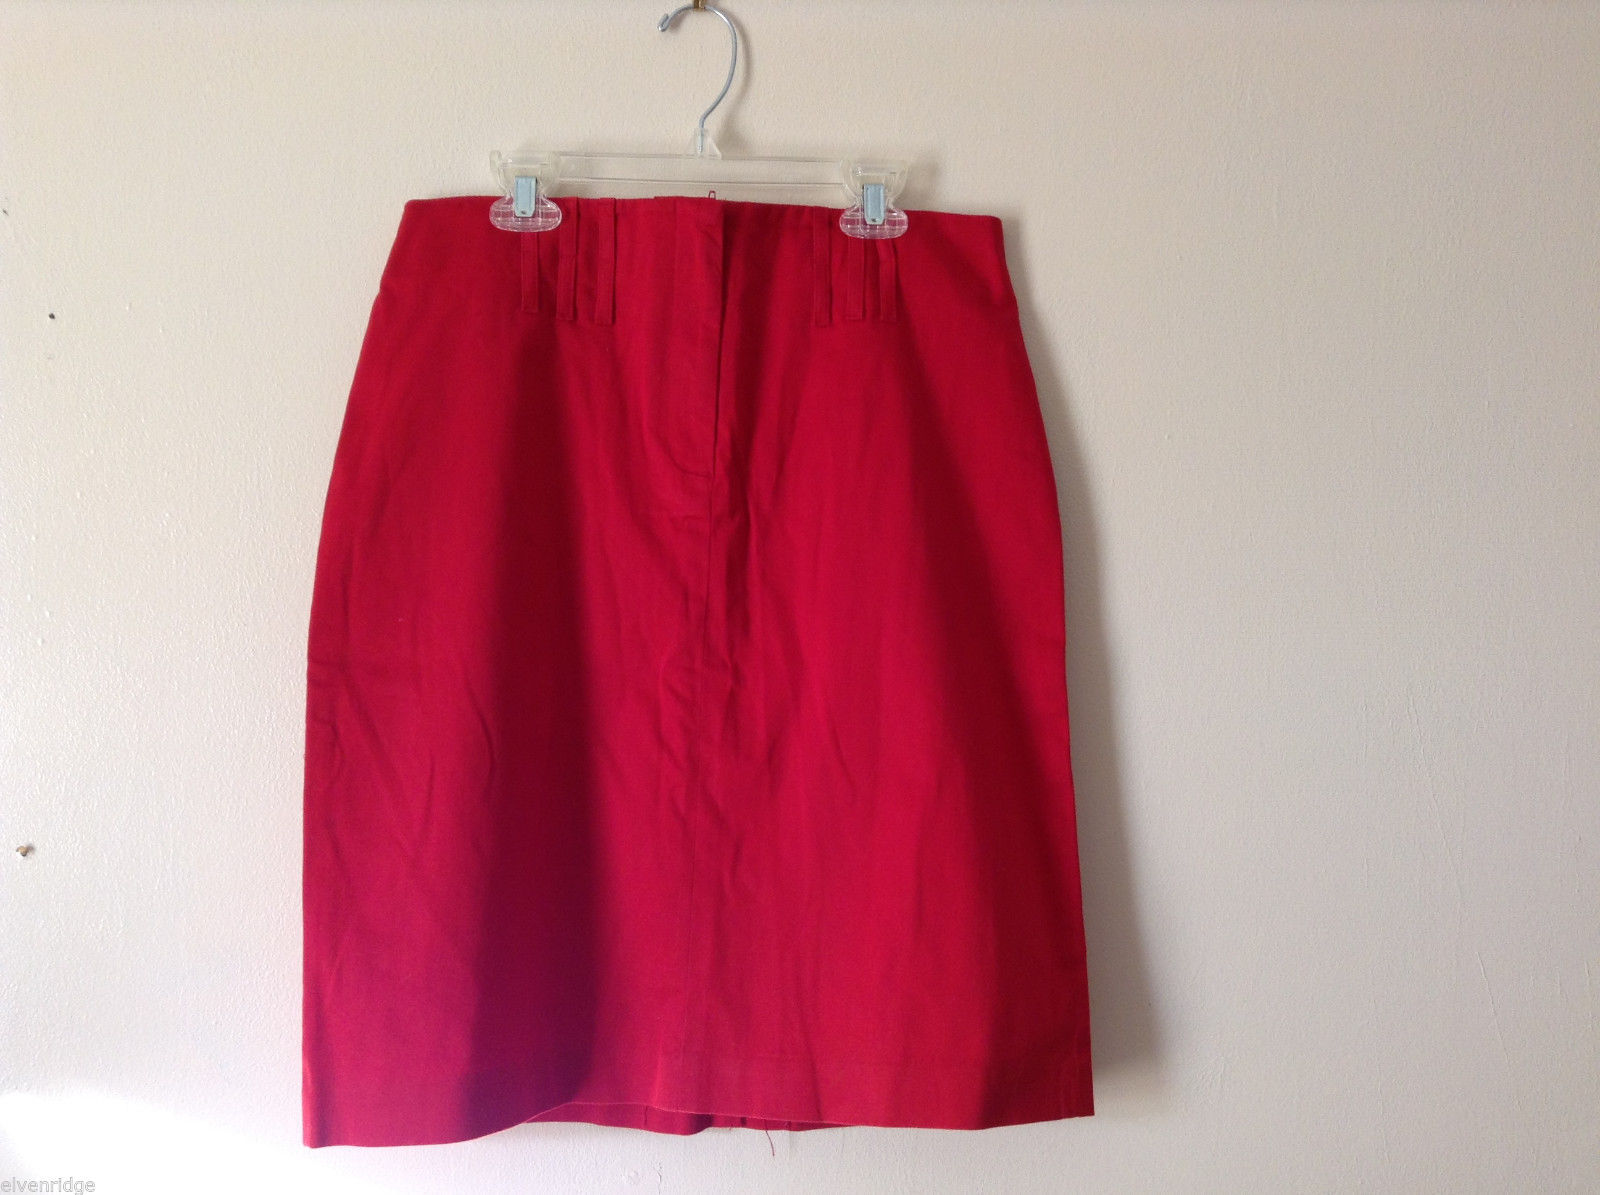 "Dalia Casual Women's Size 6 Vibrant Red Short Mini Skirt Miniskirt 21"" Long"